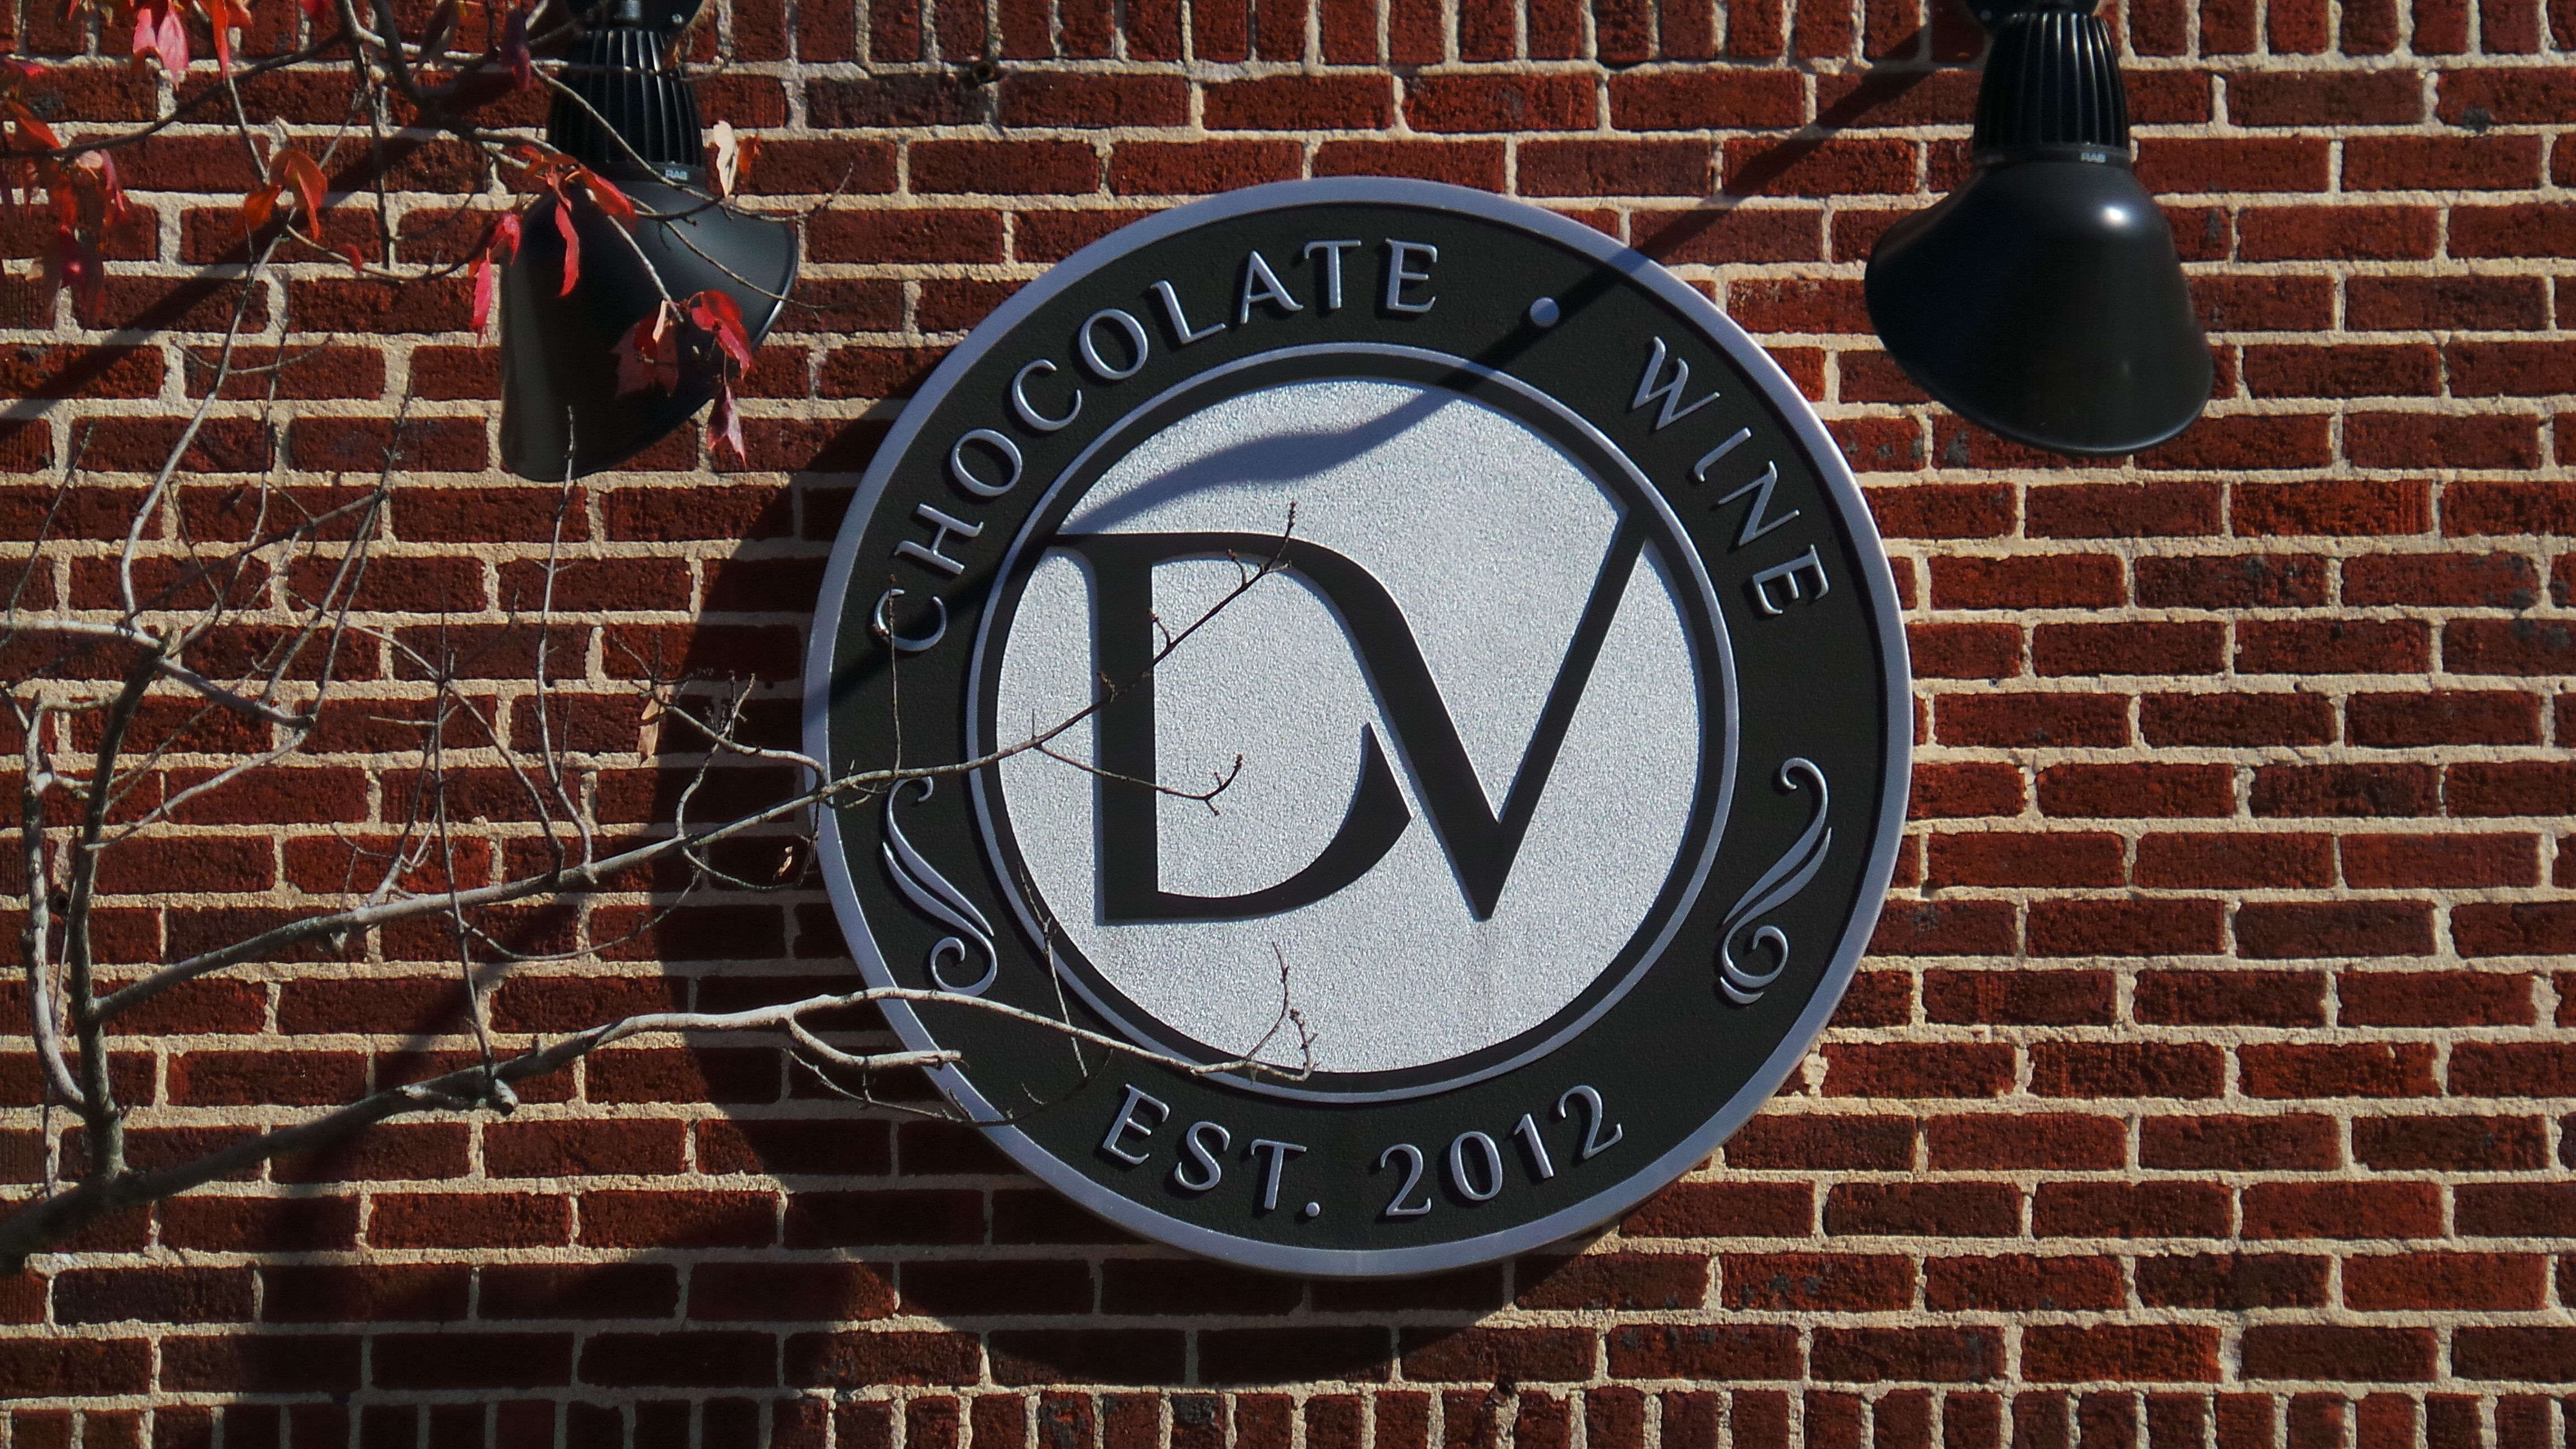 Another place to visit while in Florence, SC is Dolce Vita Chocolate & Wine Tasting Room. The place is very cozy and offers a unique experience. #GoNative #spon